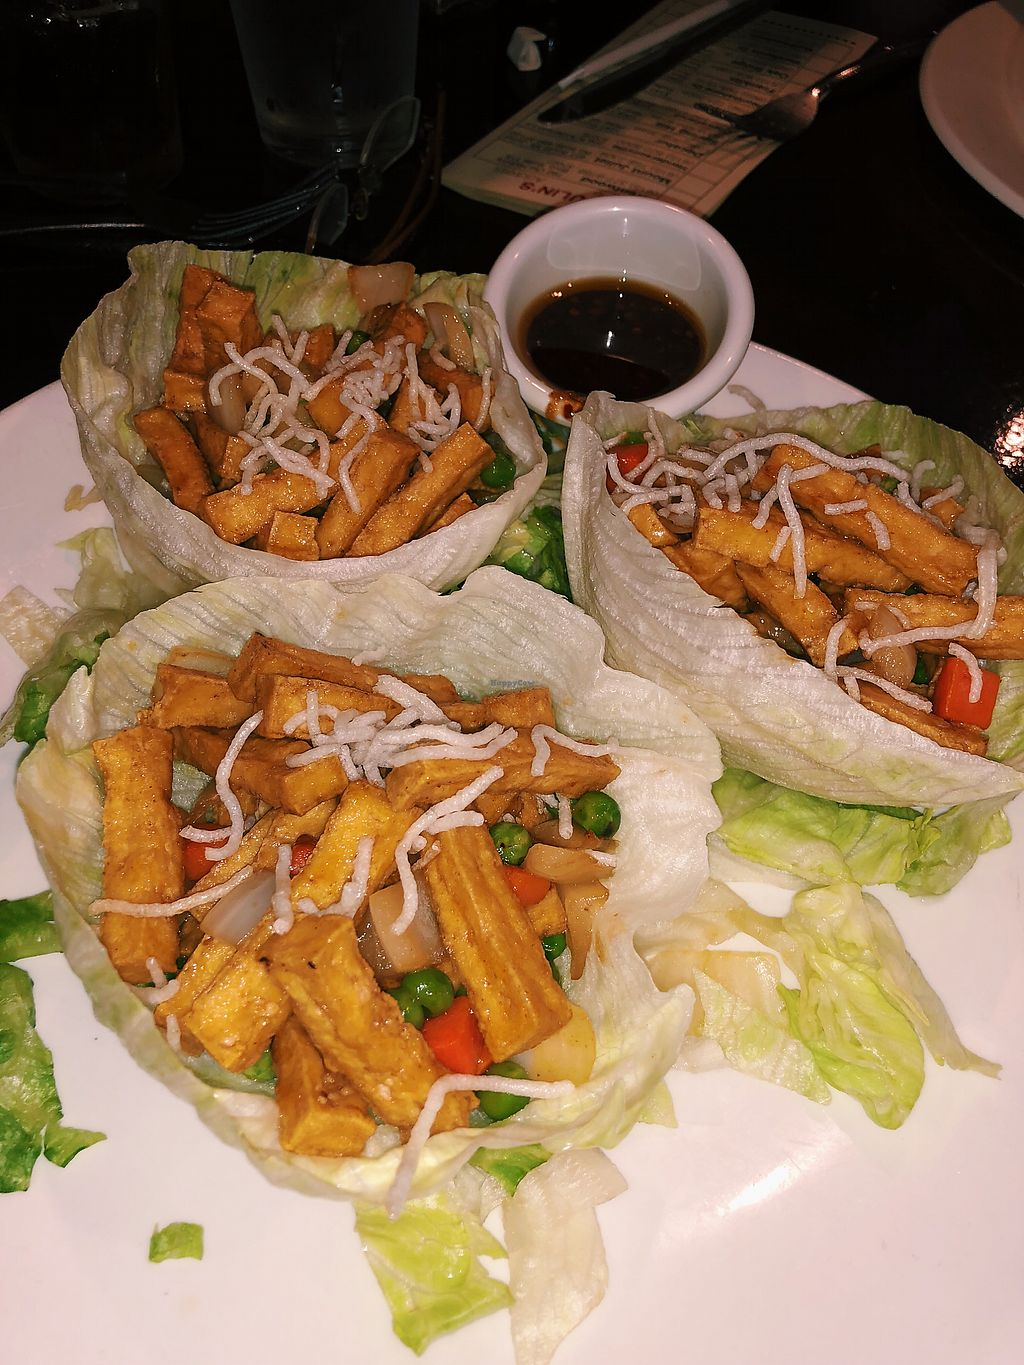 """Photo of Fulin's Asian Cuisine  by <a href=""""/members/profile/AbigailAnnaFoster"""">AbigailAnnaFoster</a> <br/>Bean Curd Lettuce wraps <br/> April 14, 2018  - <a href='/contact/abuse/image/71848/385885'>Report</a>"""